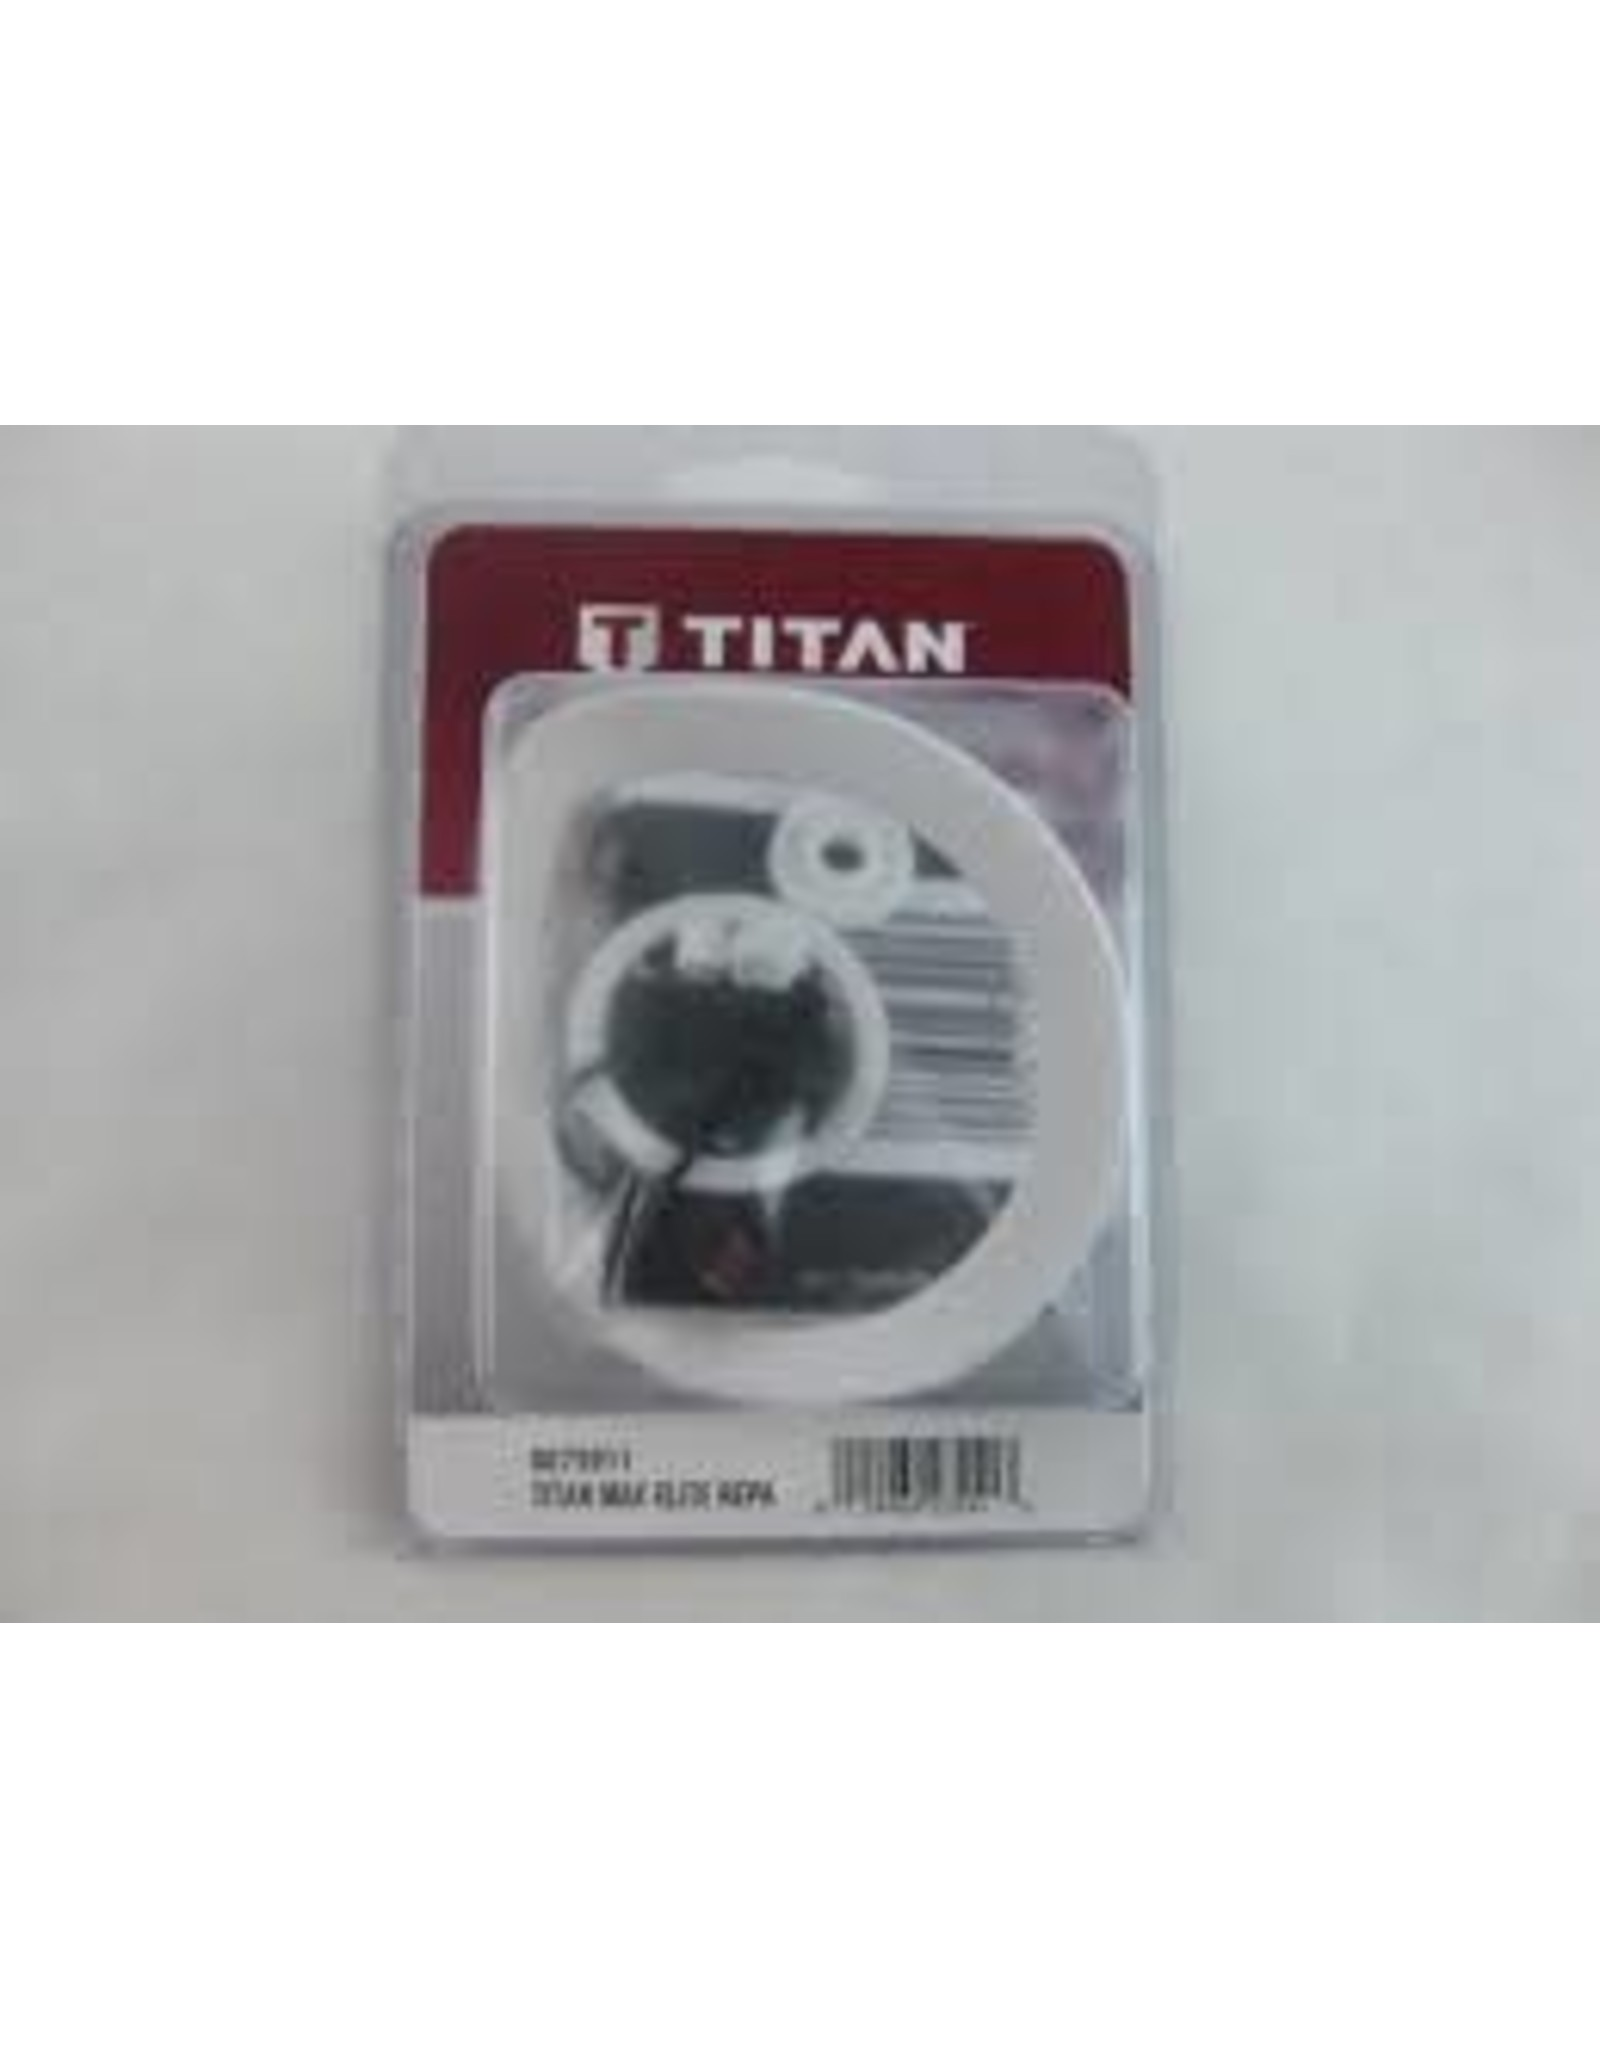 Titan 0279911 Titan HVLP Max Elite repair kit